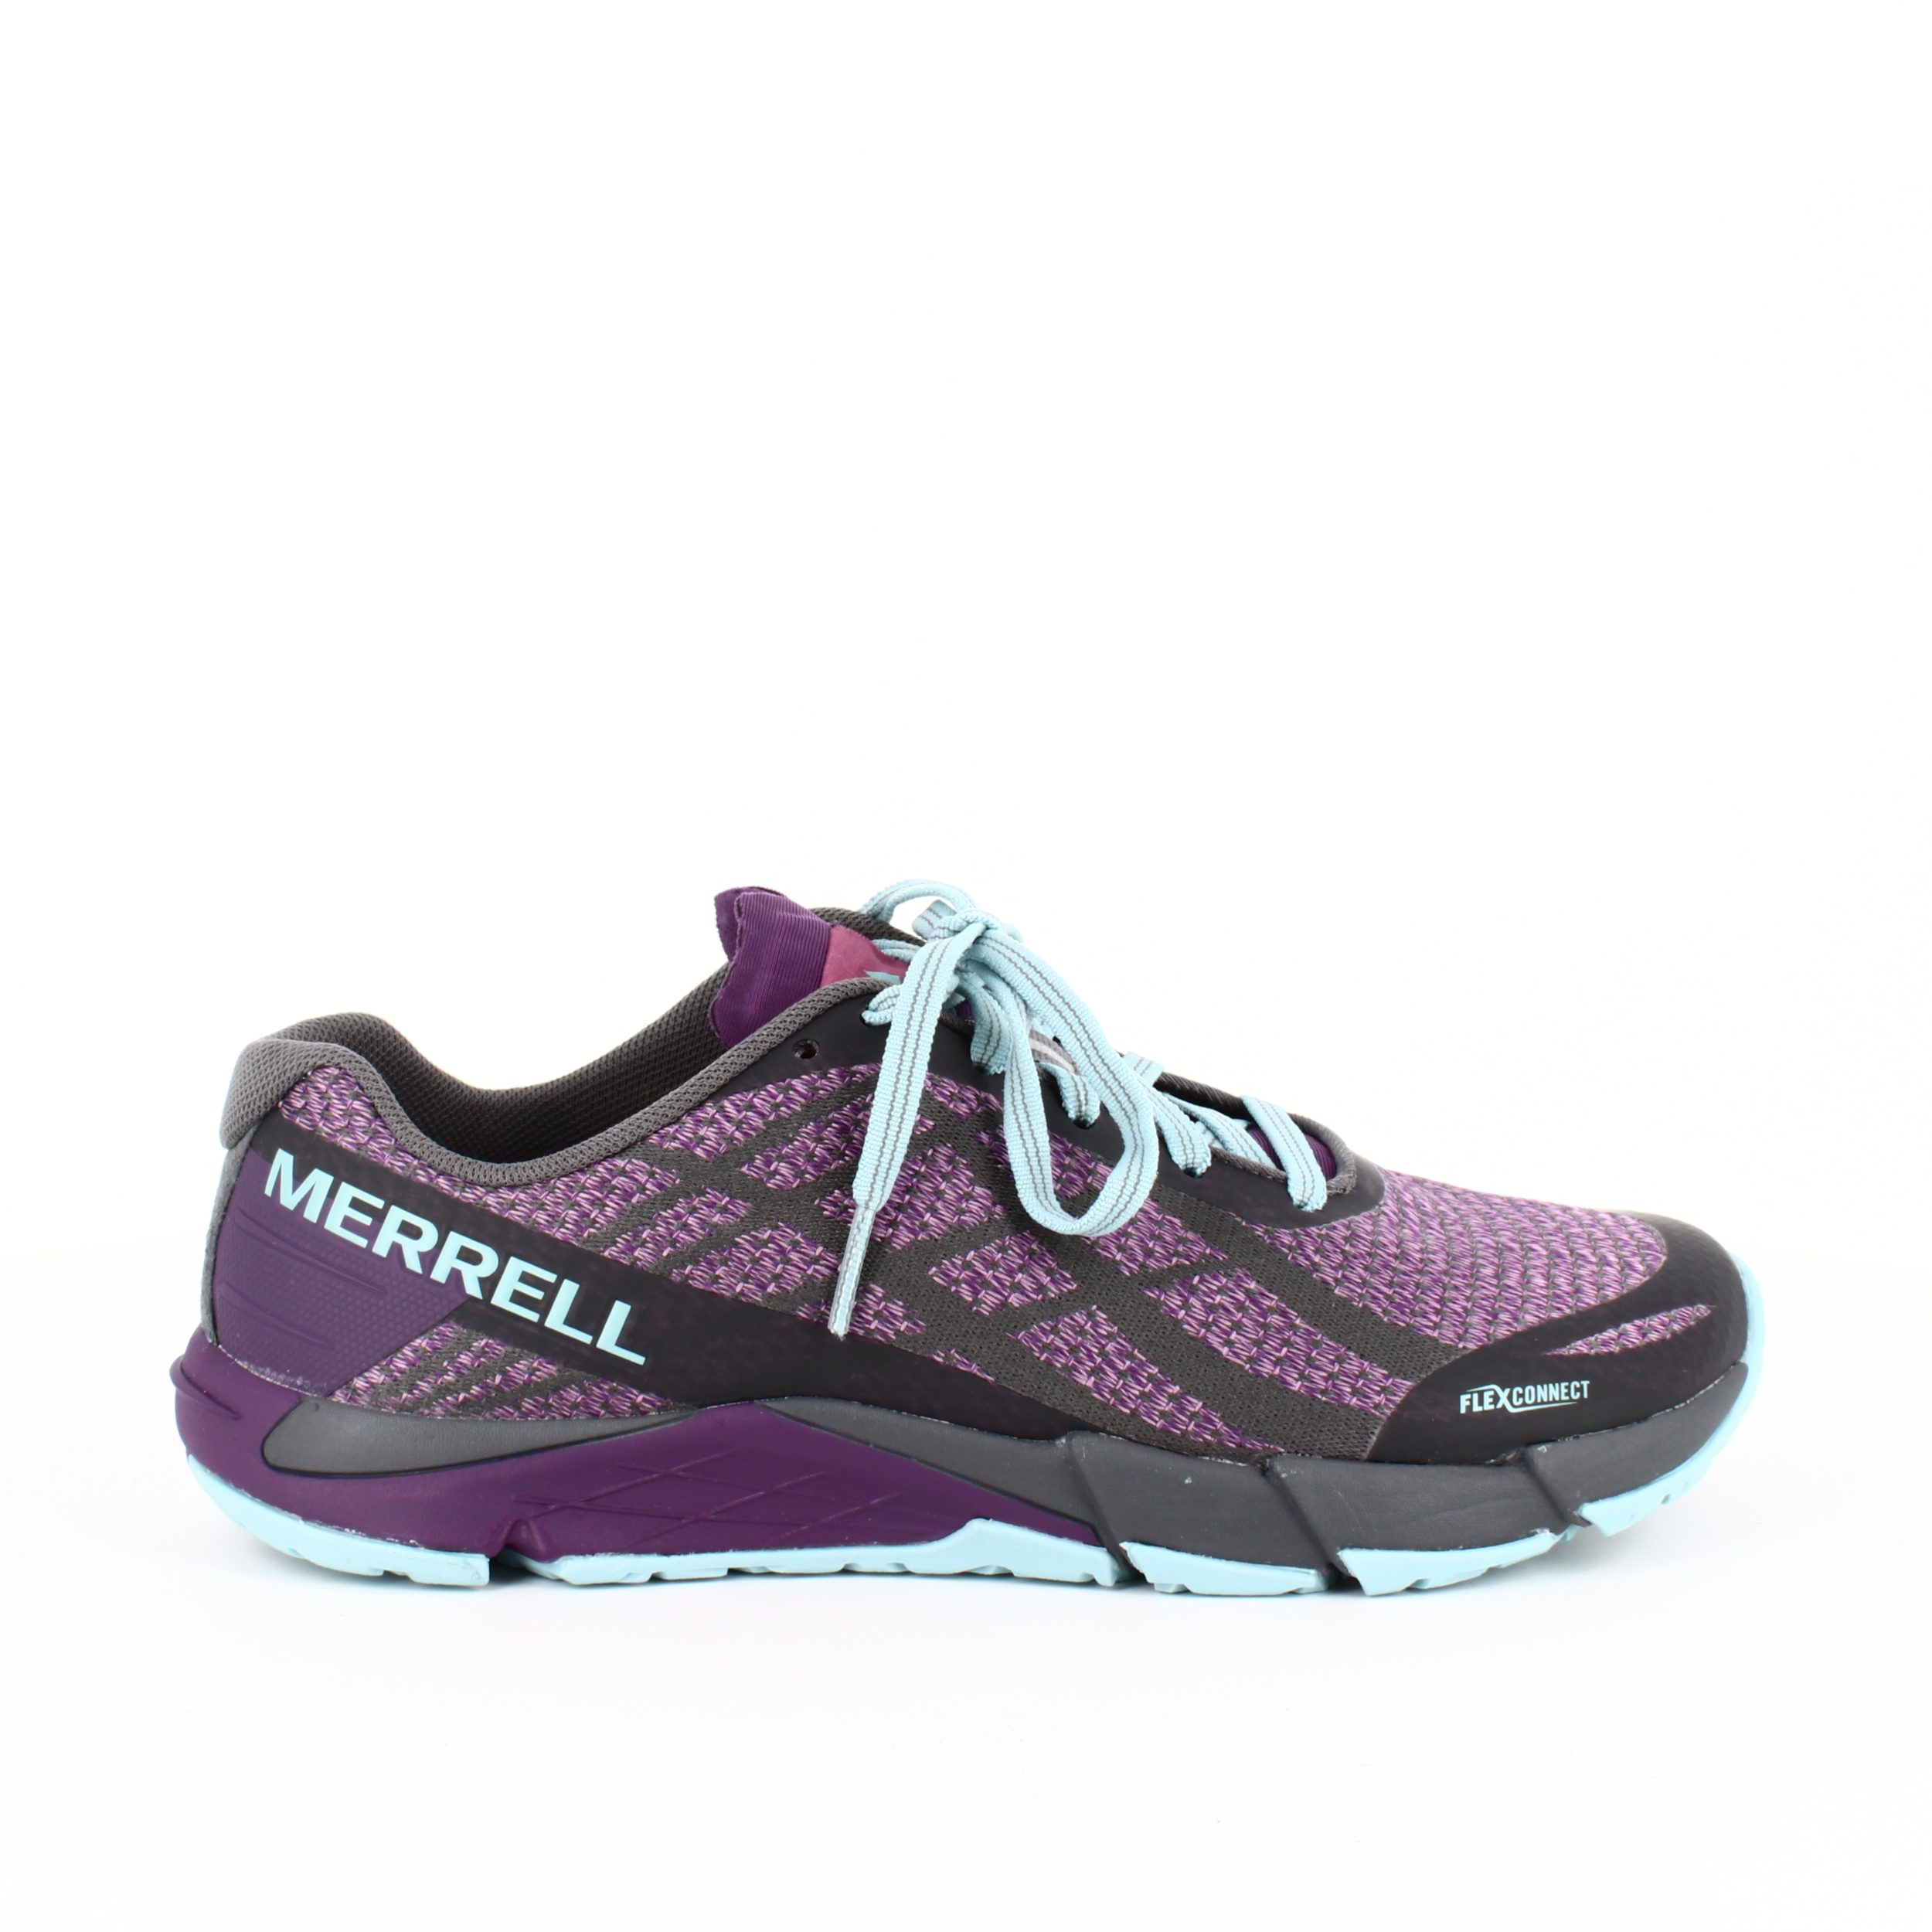 Image of   Merrell sneakers med flex shield og bare foot teknologi - 40